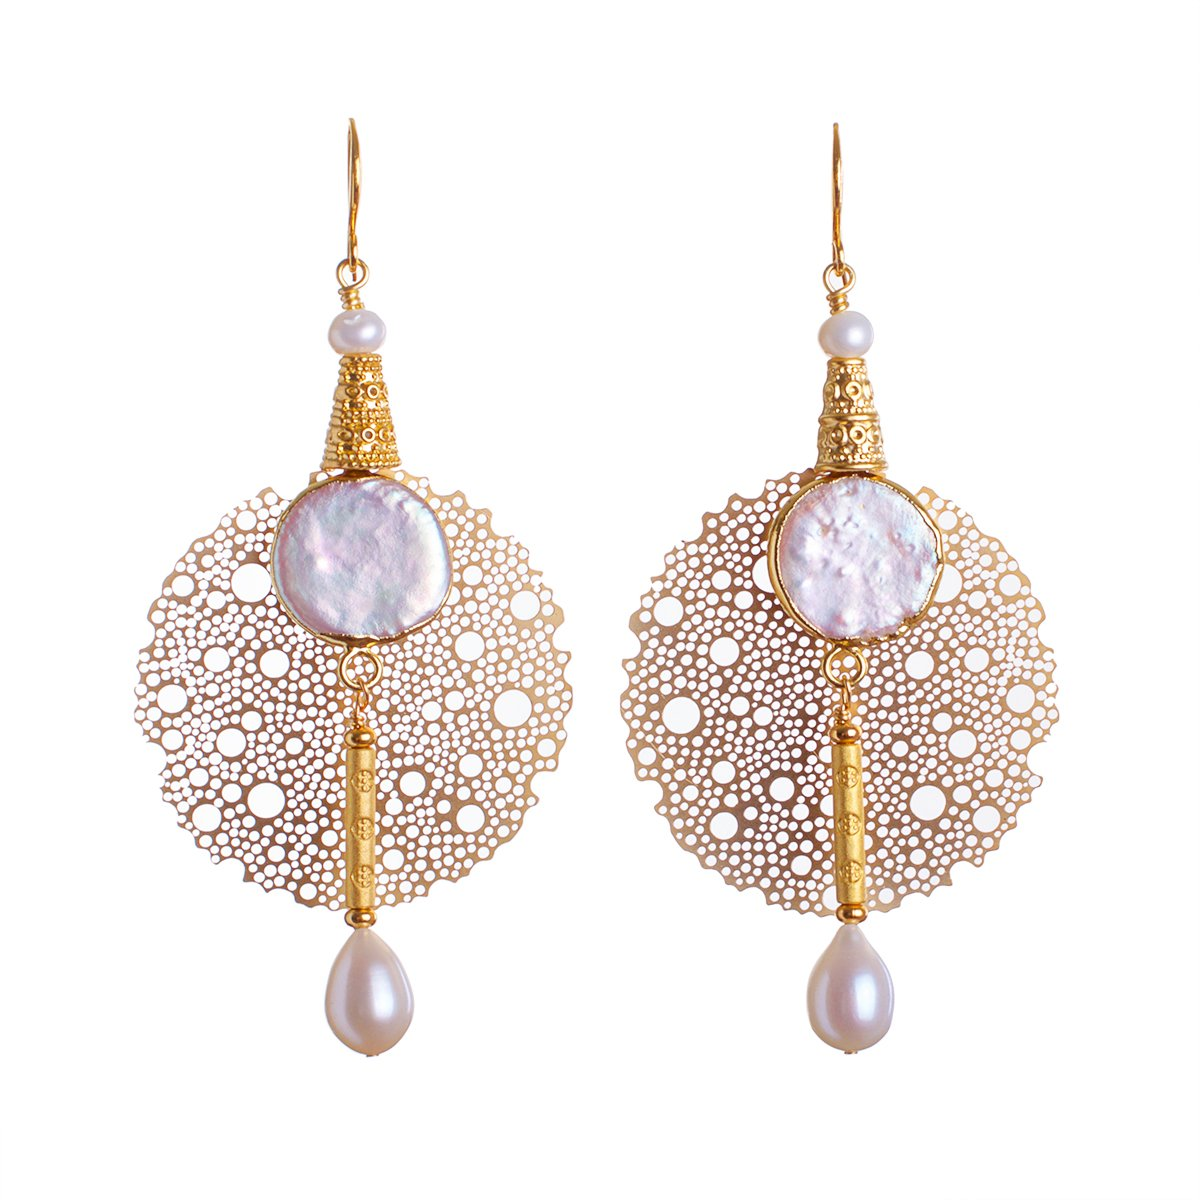 Dining Out Around the Pearl Solar System Statement Earrings